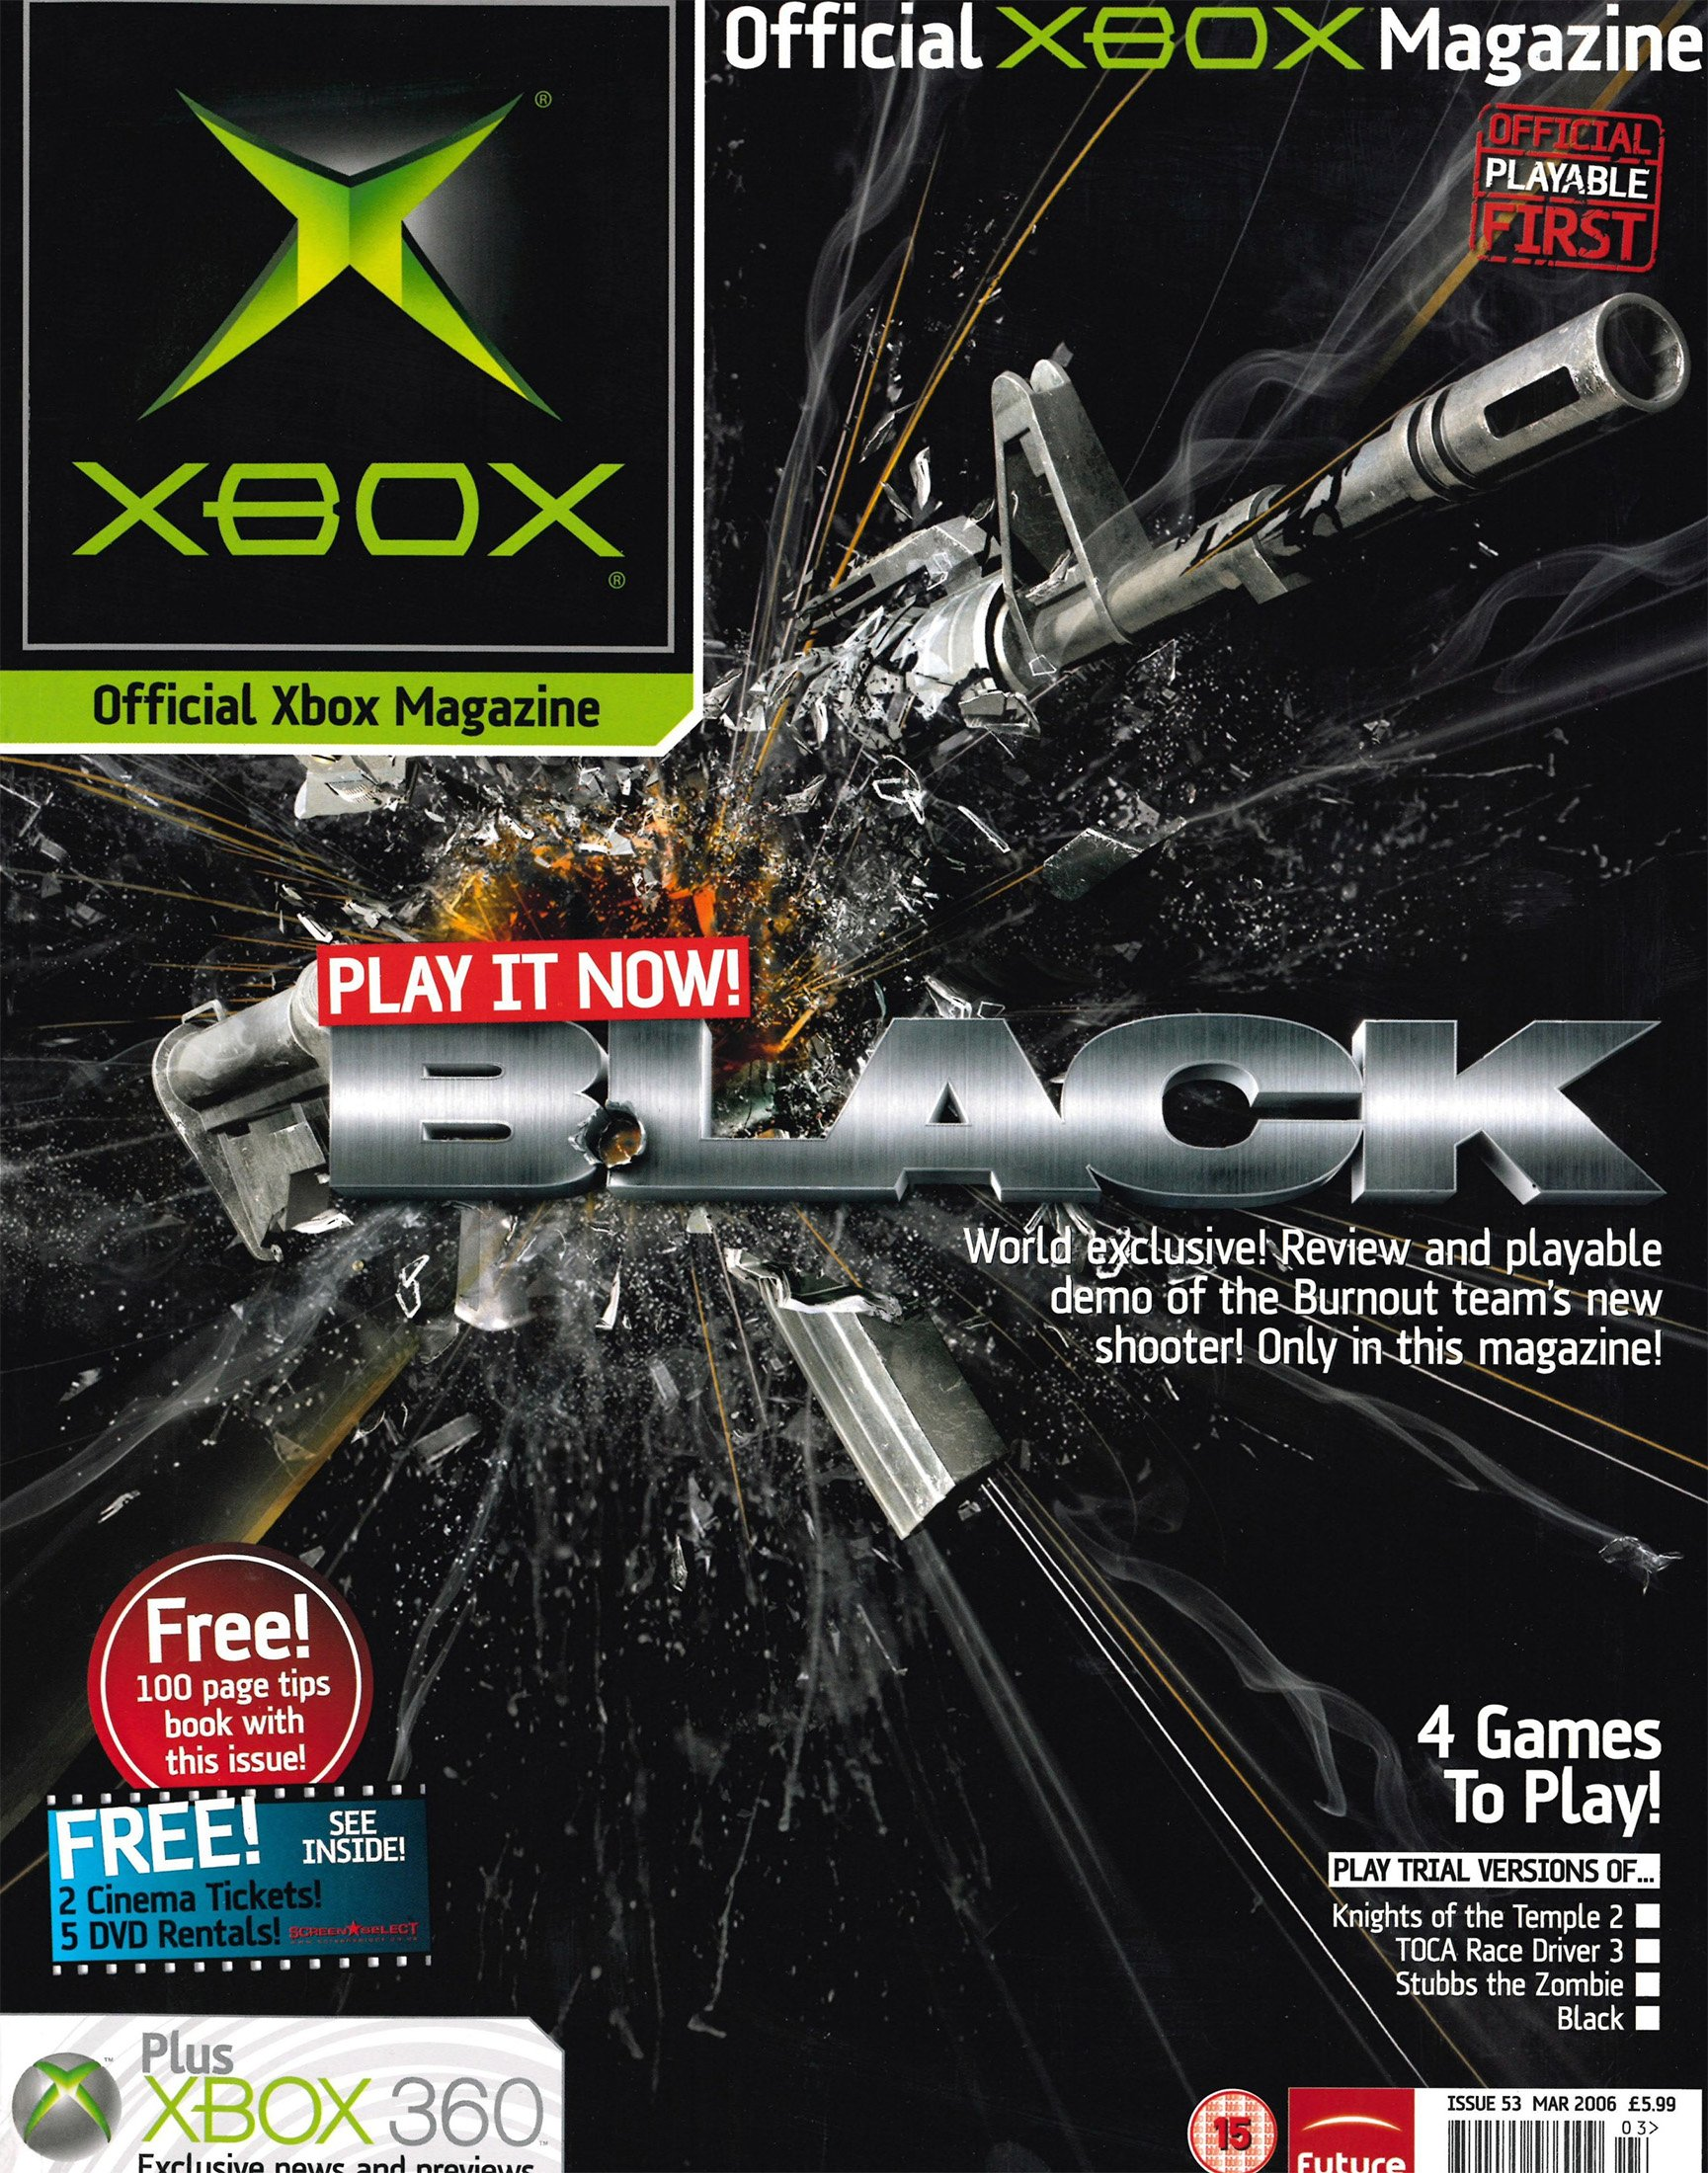 Official UK Xbox Magazine Issue 53 - March 2006